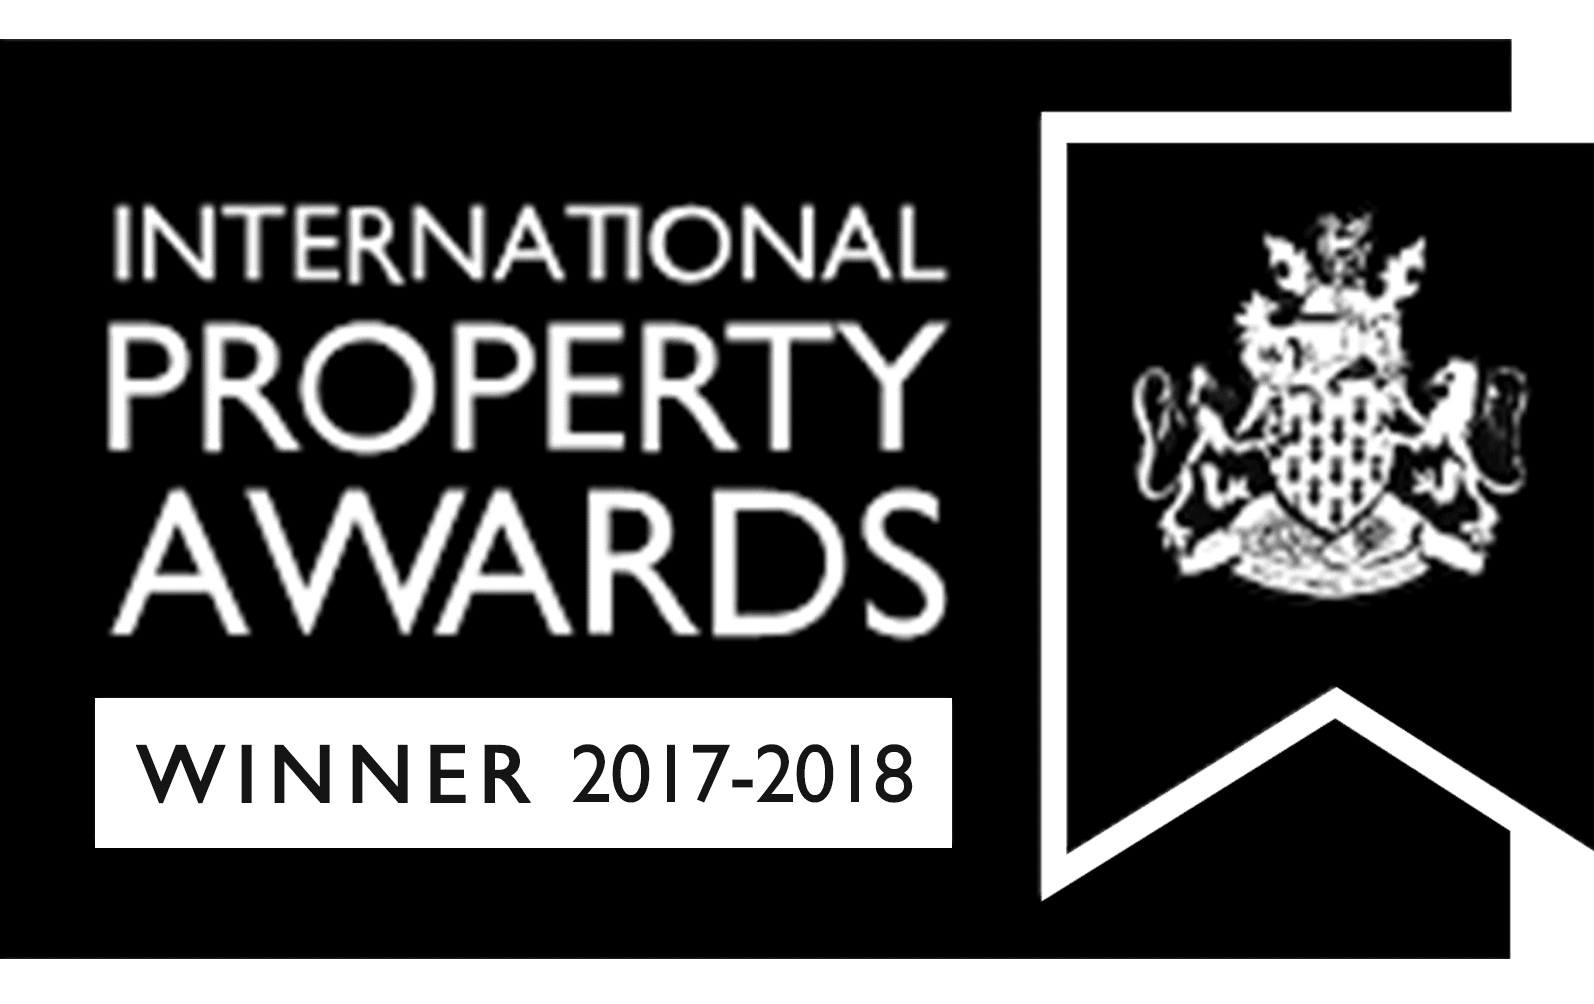 International Property Awards 2018-2019